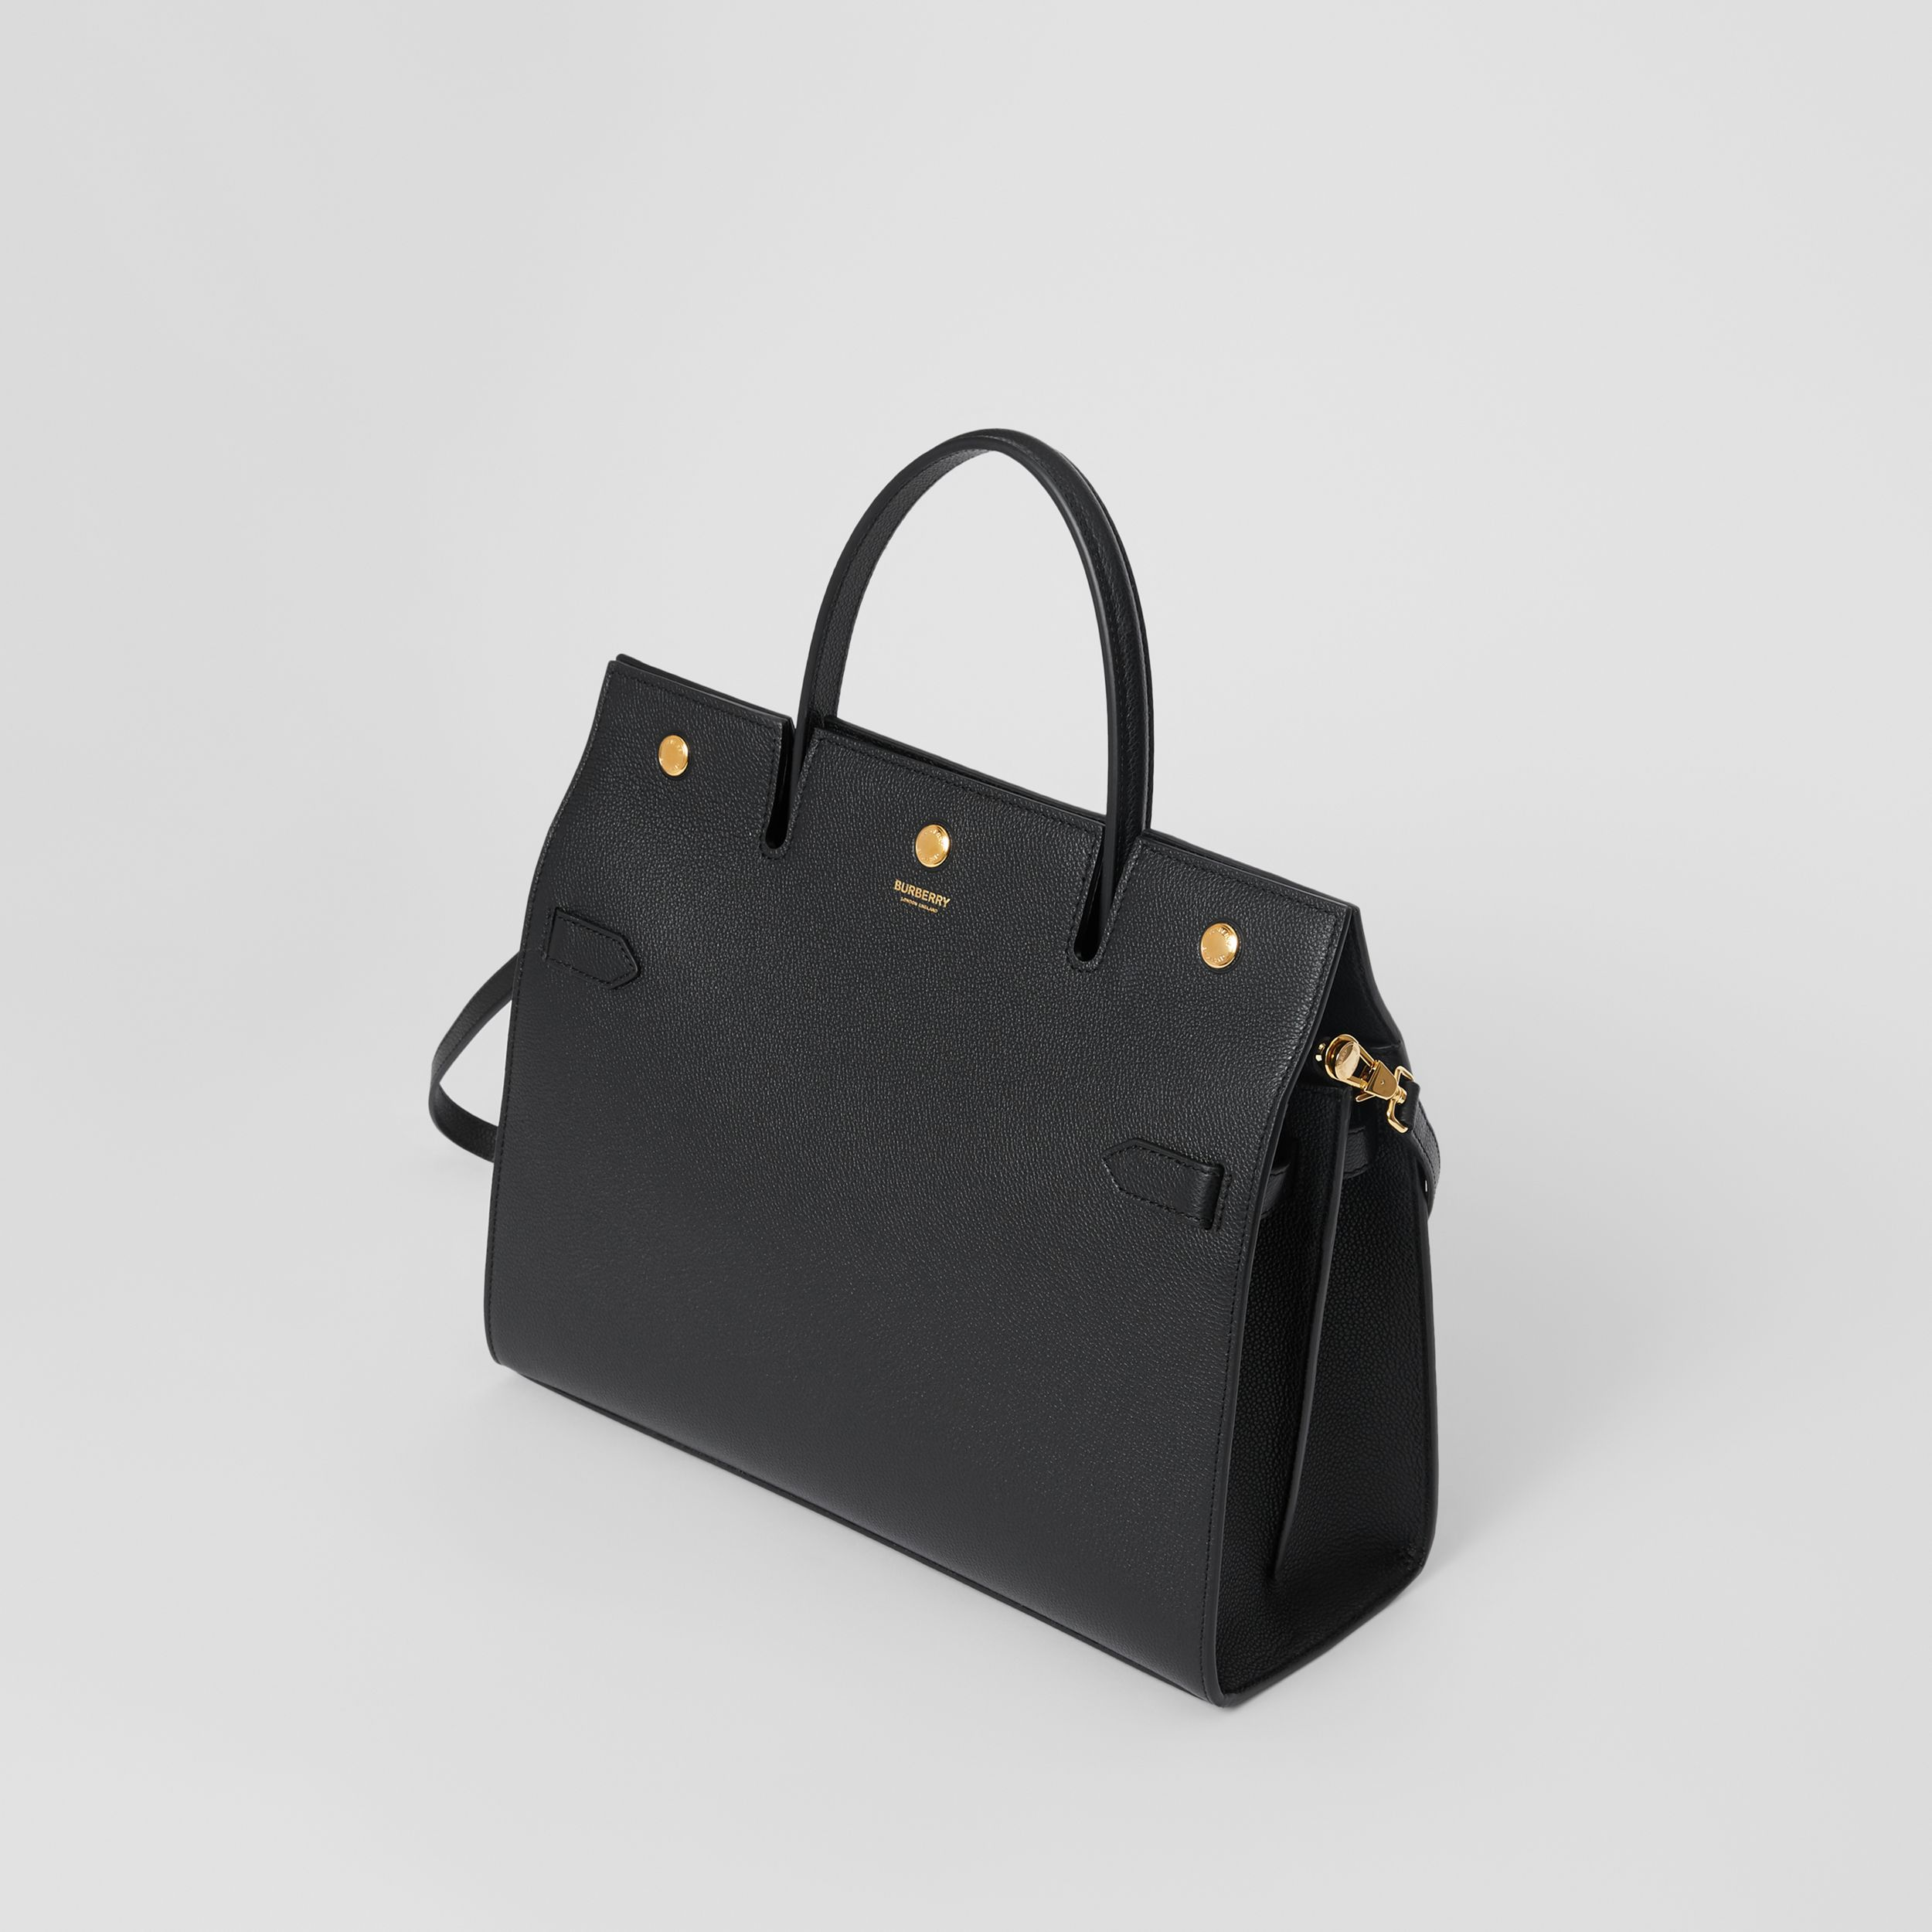 Medium Leather Title Bag in Black - Women | Burberry Australia - 4